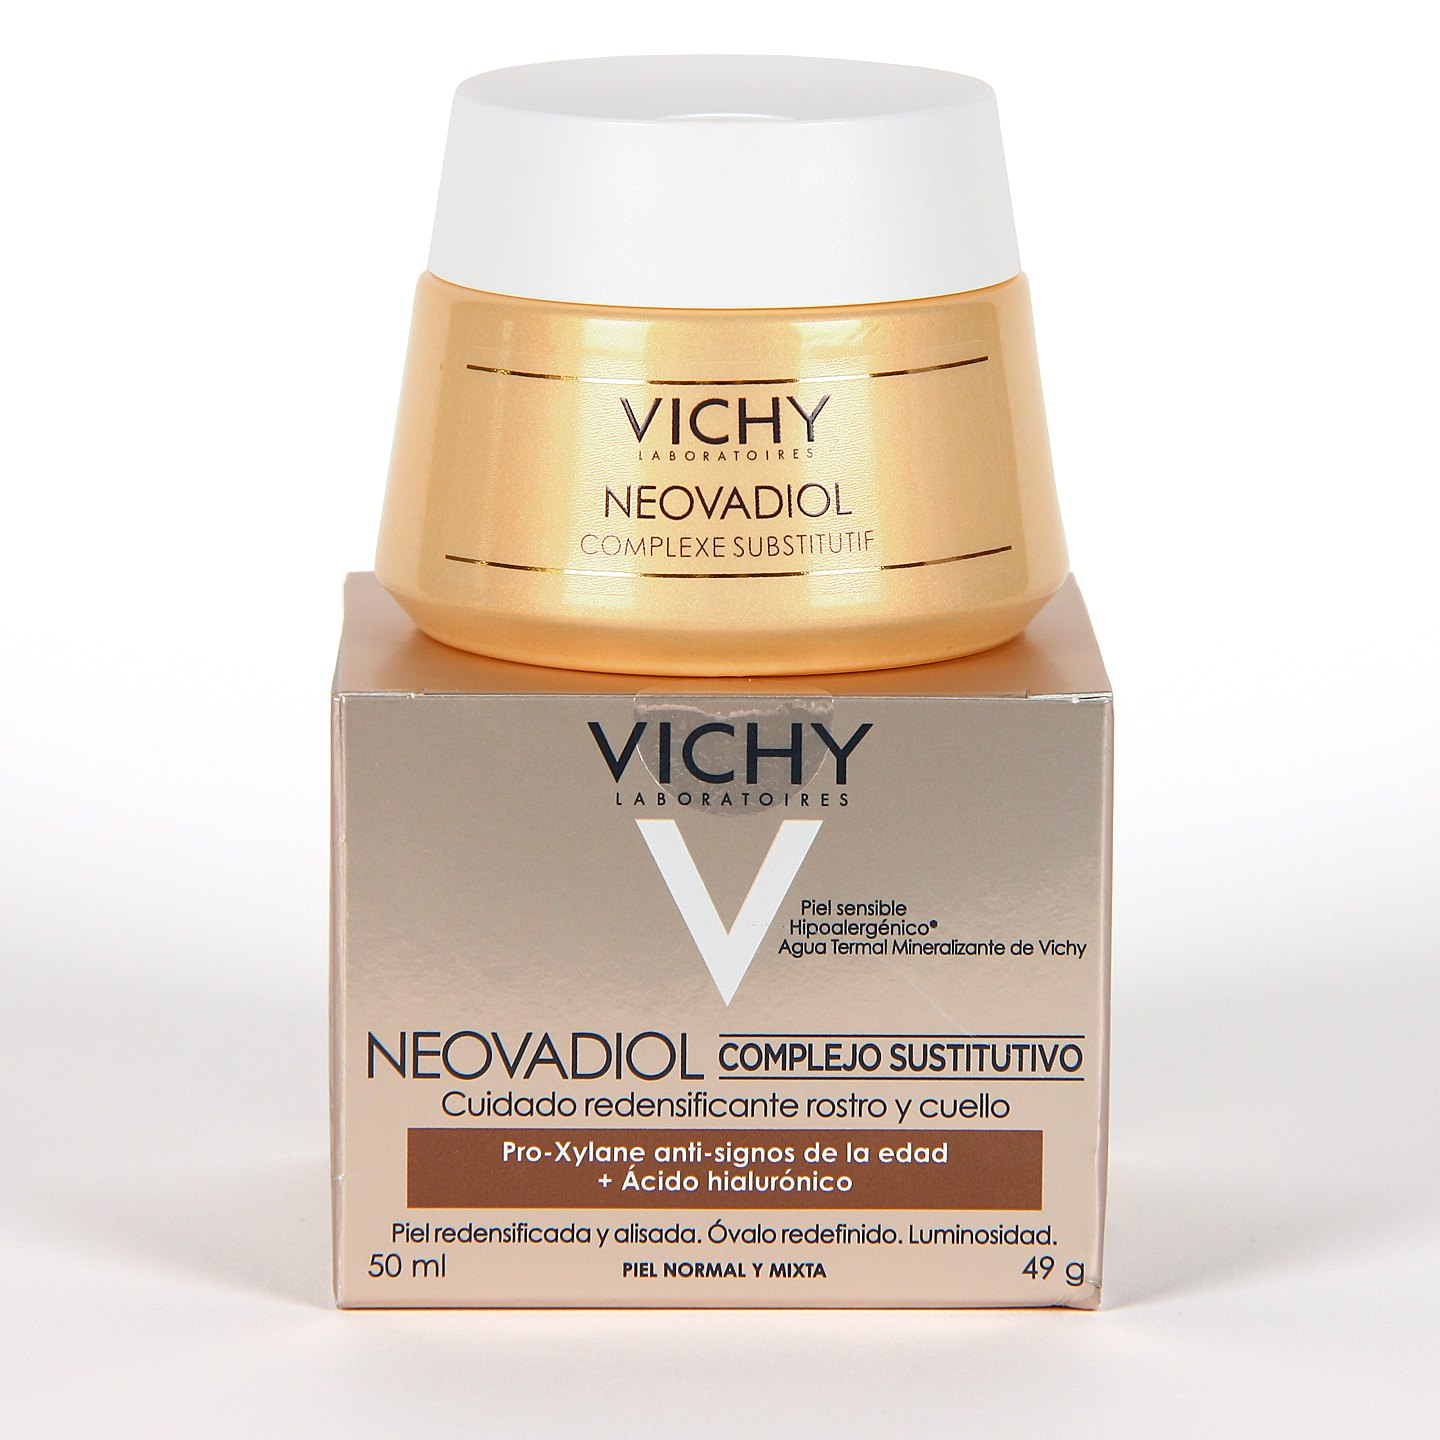 Vichy Neovadiol Cs Crema De Día Piel Normal Y Mixta 50 Ml Farmacia Jiménez